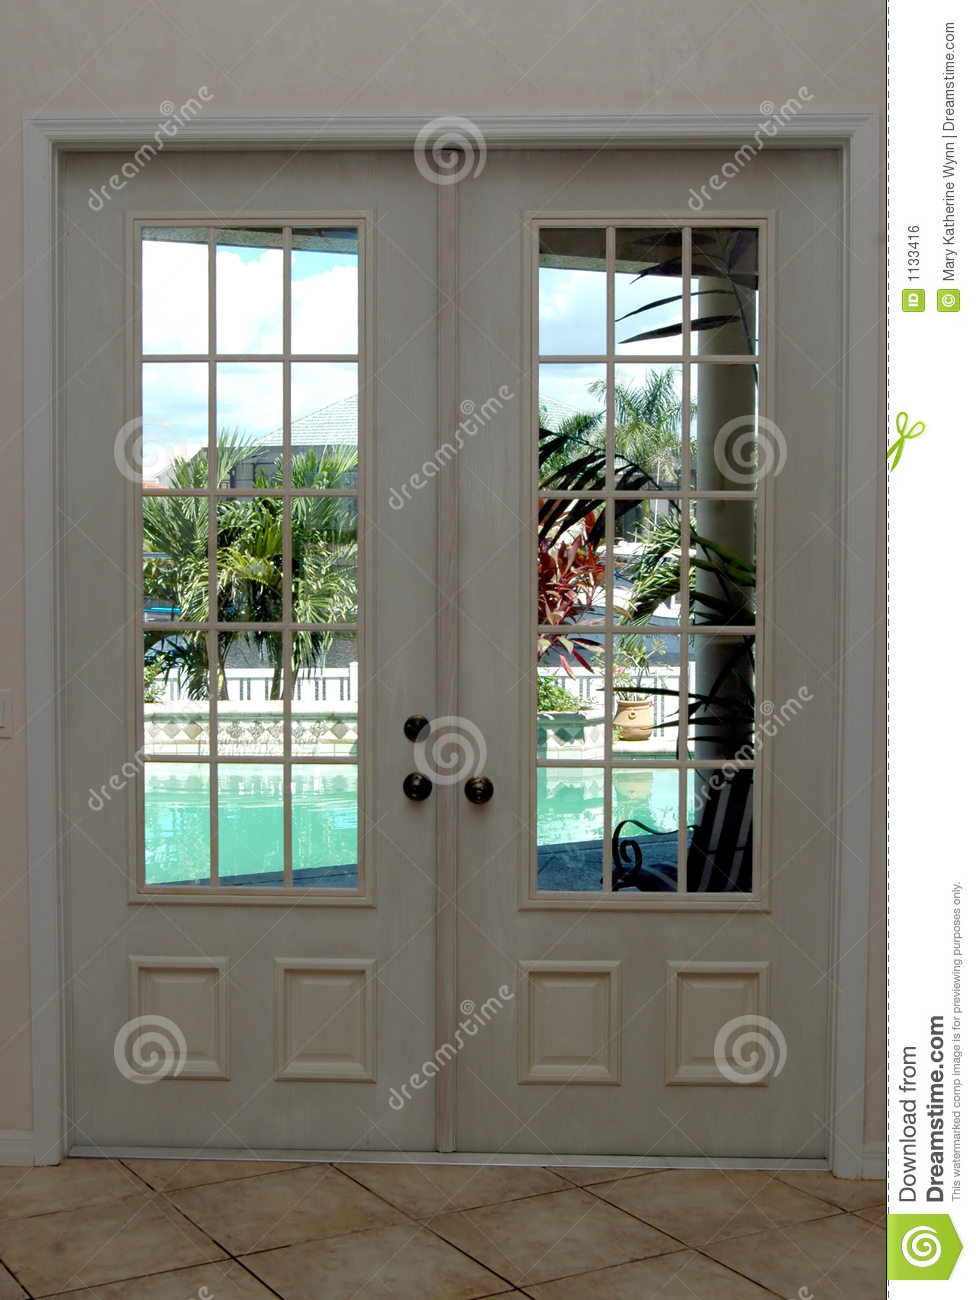 Closed french doors royalty free stock image image 1133416 for Looking for french doors